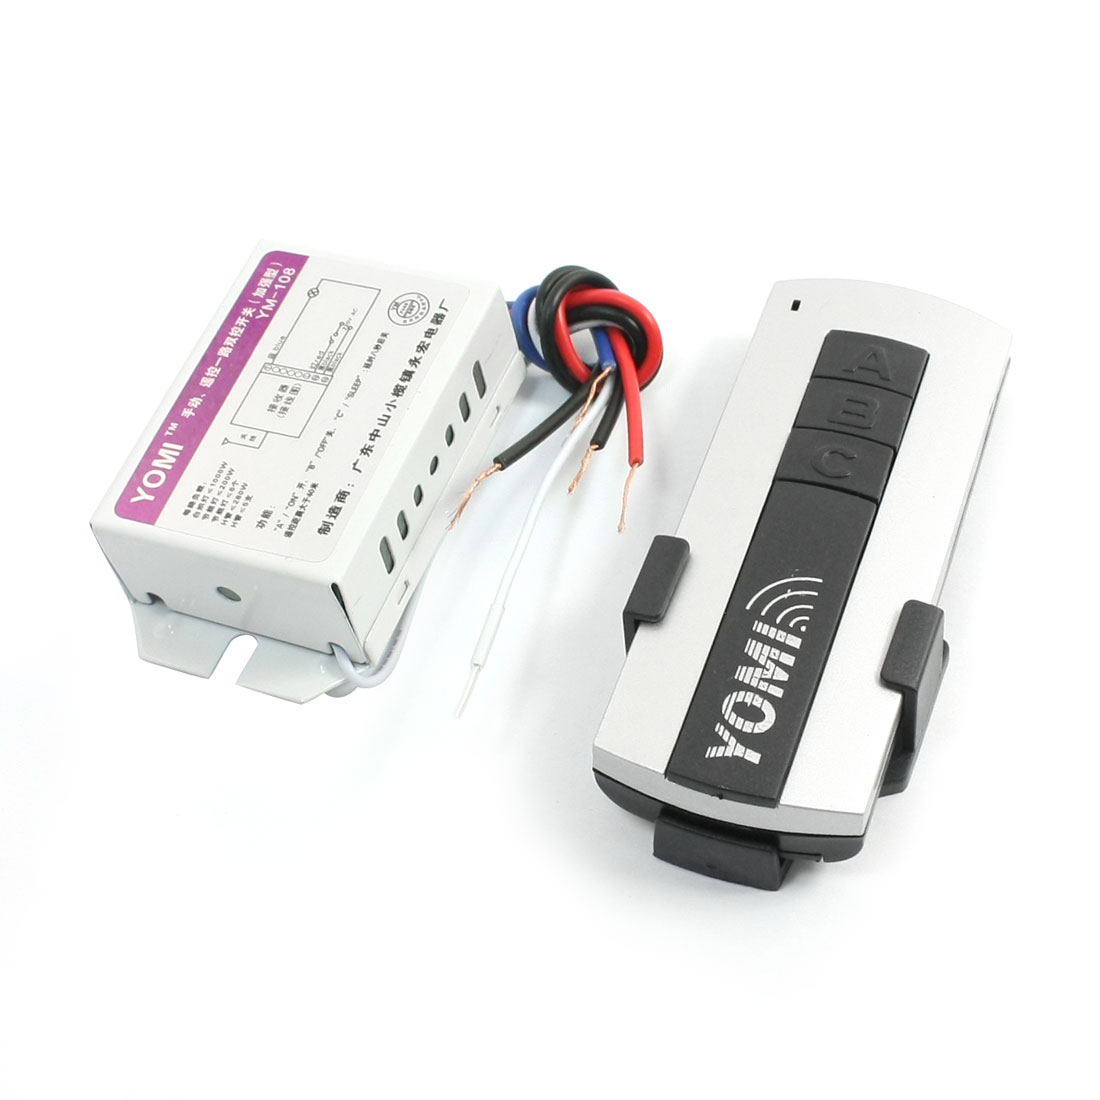 AC 220V 1 Channel 40 Meter Remote Control Switch Receiver Transmitter Module